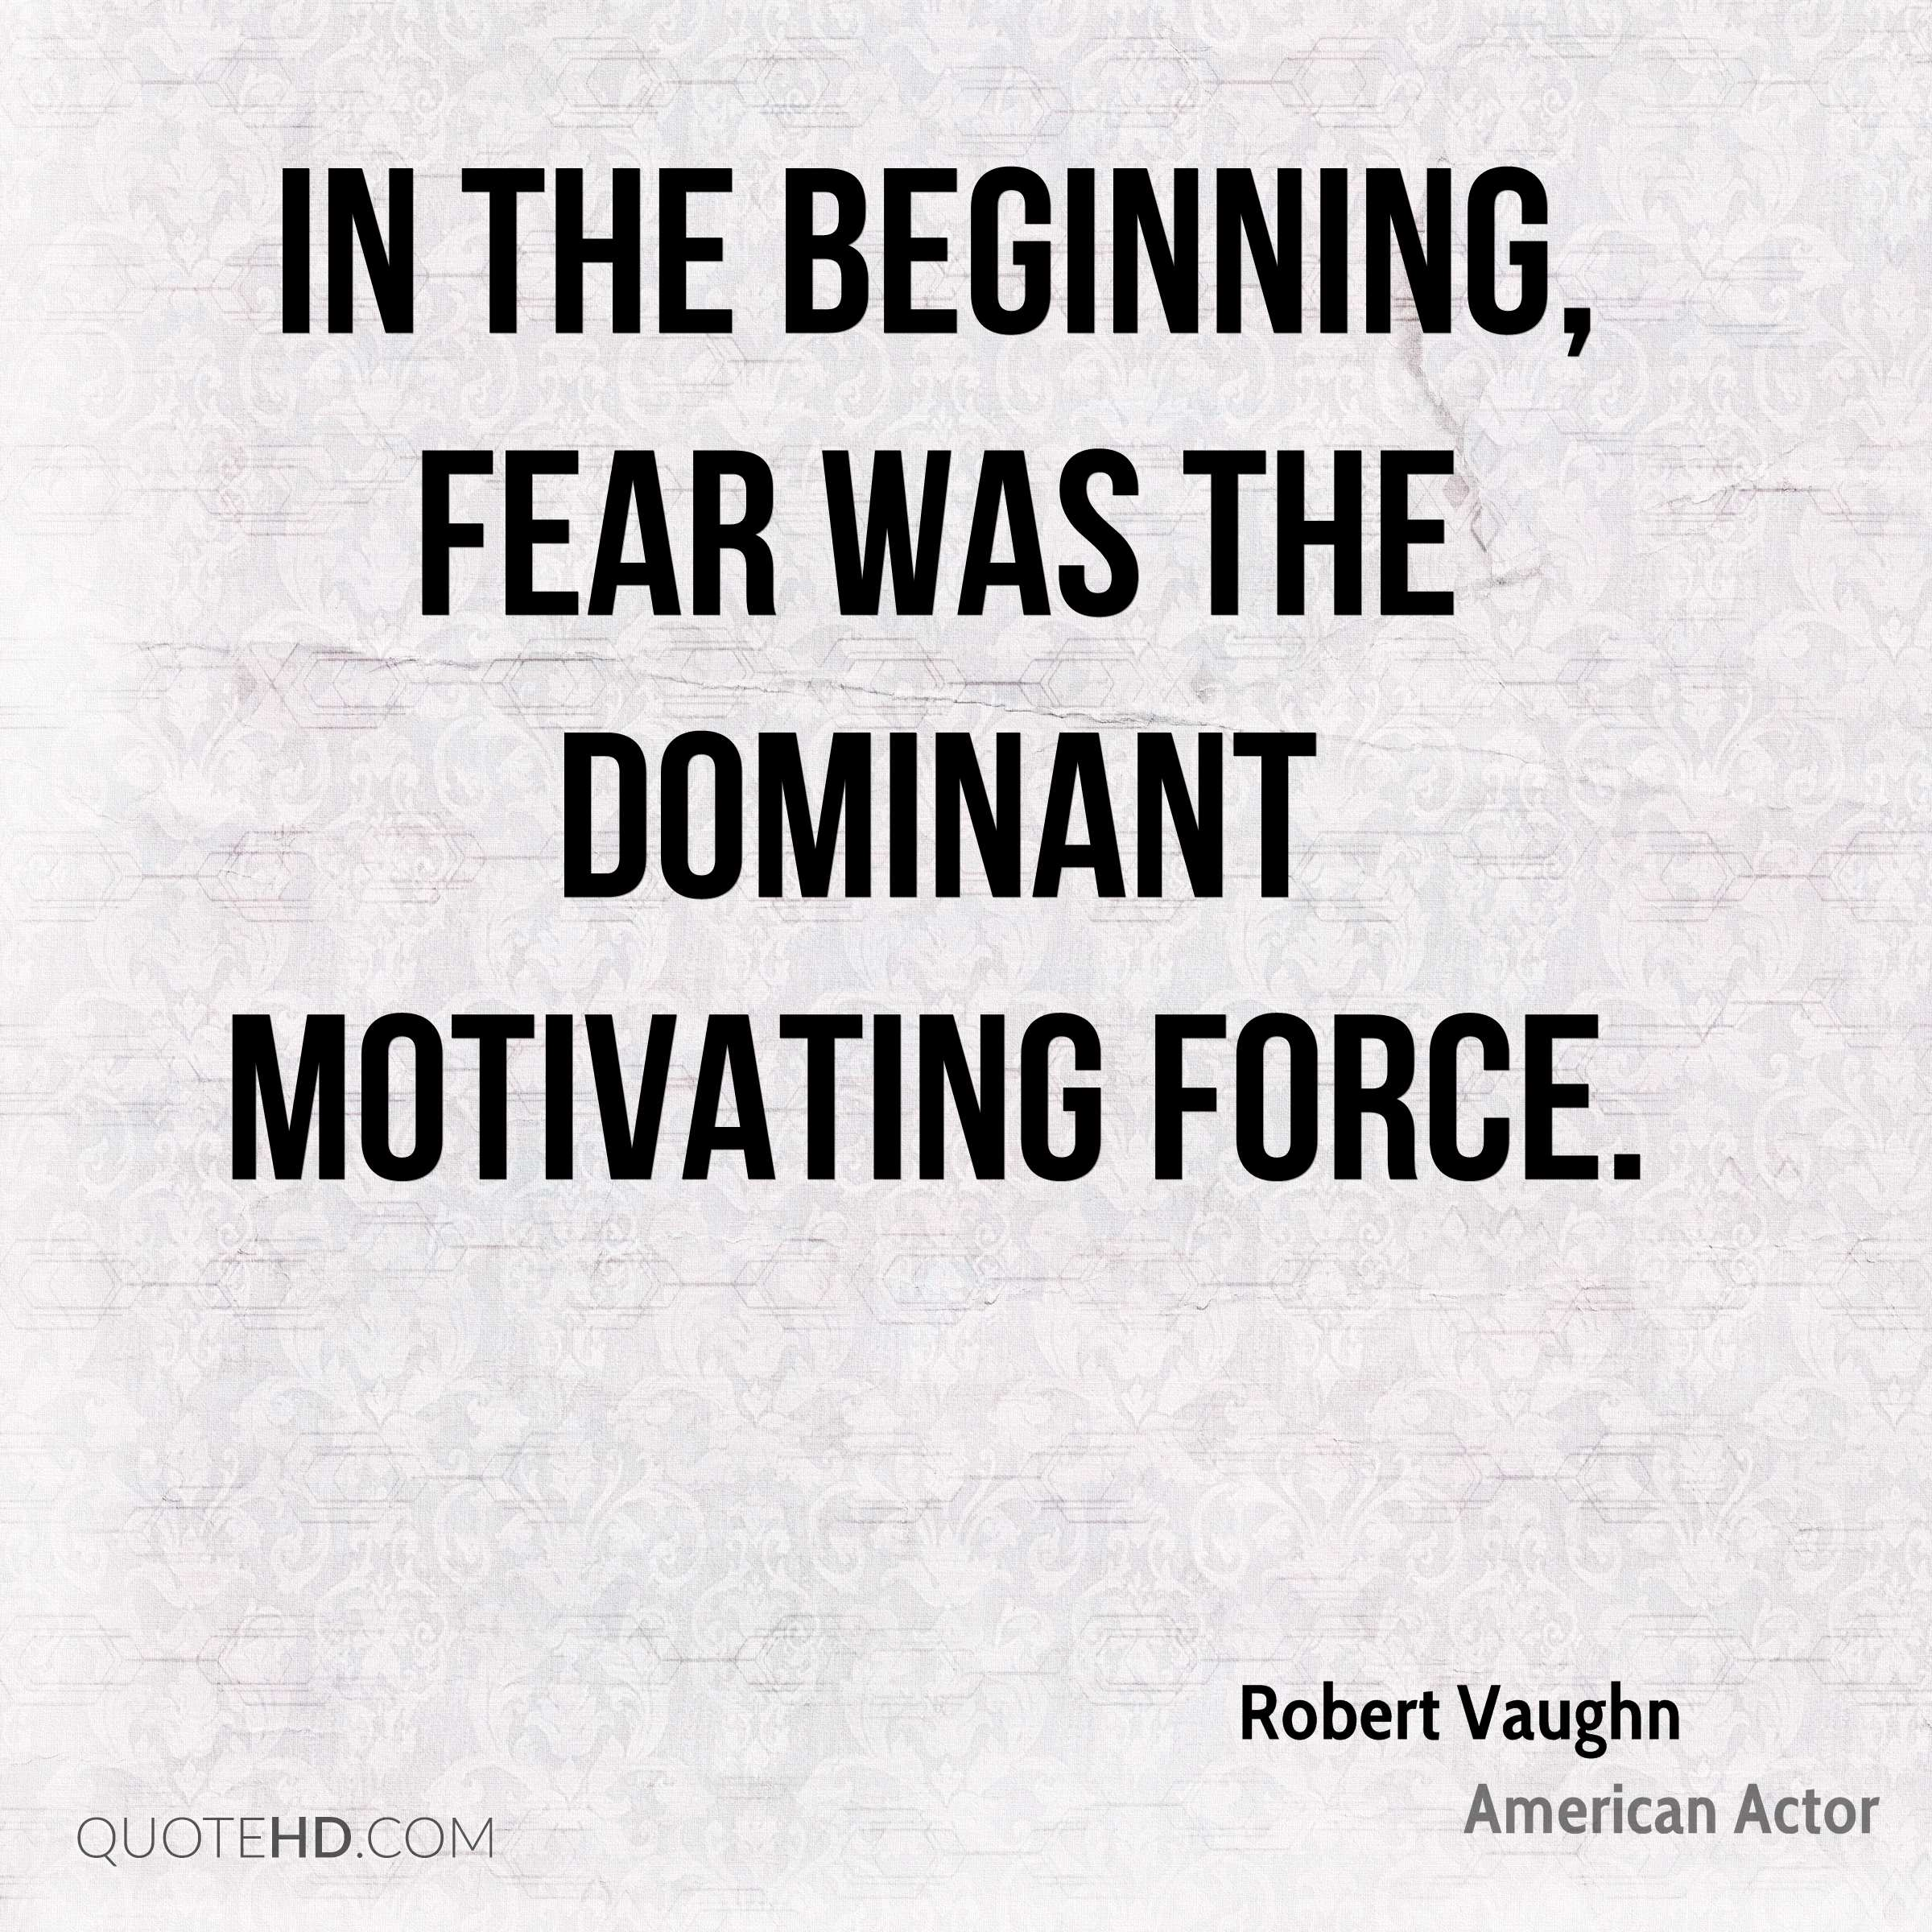 Dominant Quotes Robert Vaughn Quotes  Quotehd